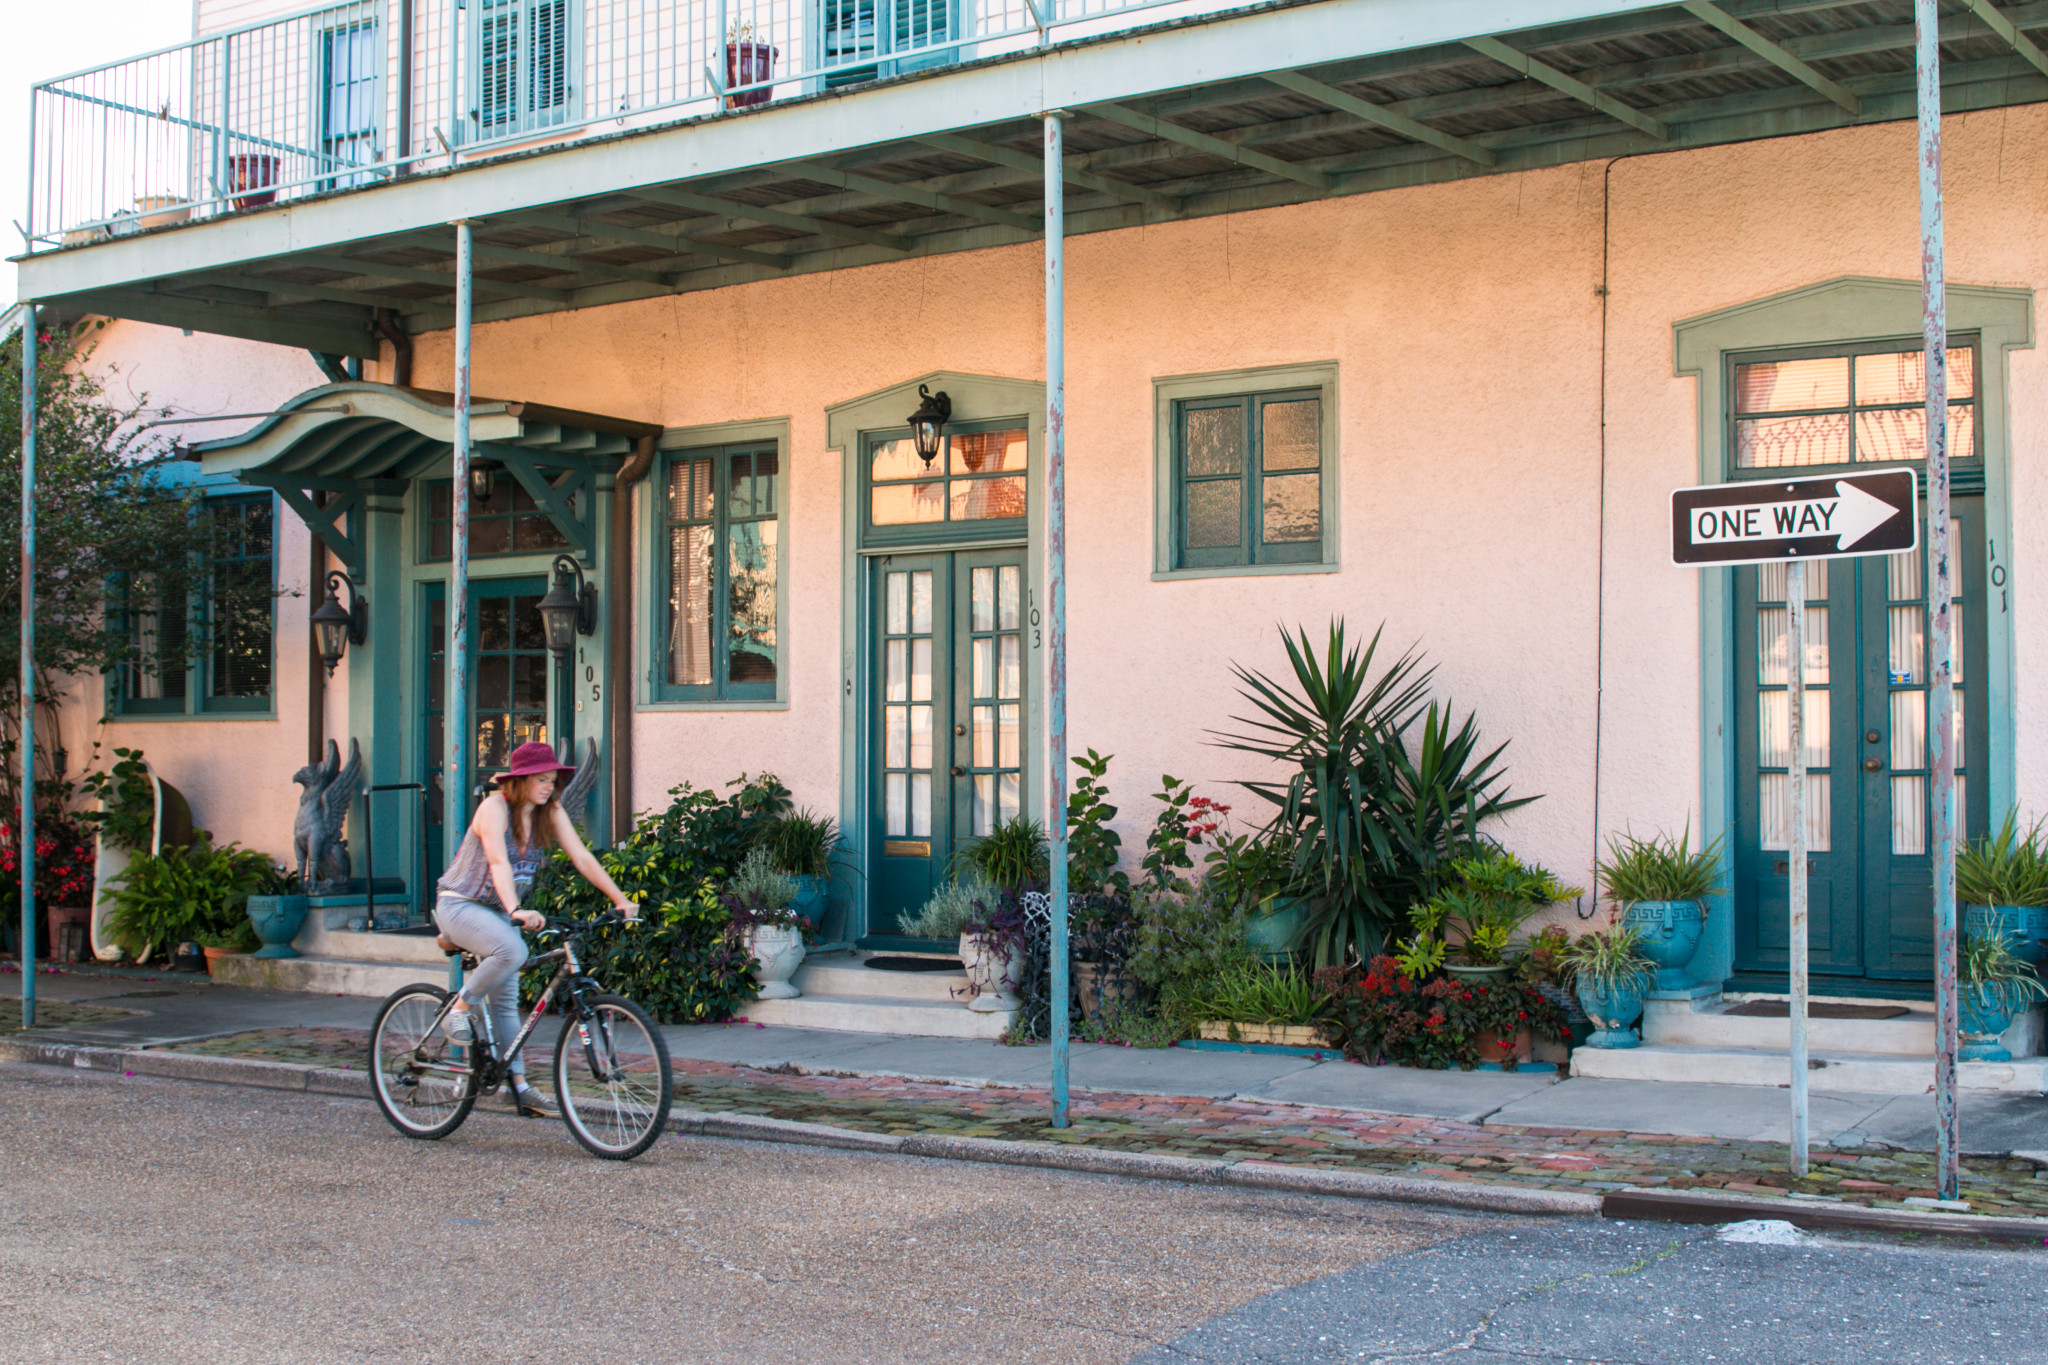 A leisurely pedal through Algiers, the historic neighborhood just across the Mississippi River. (Photo: Rebecca Ratliff)